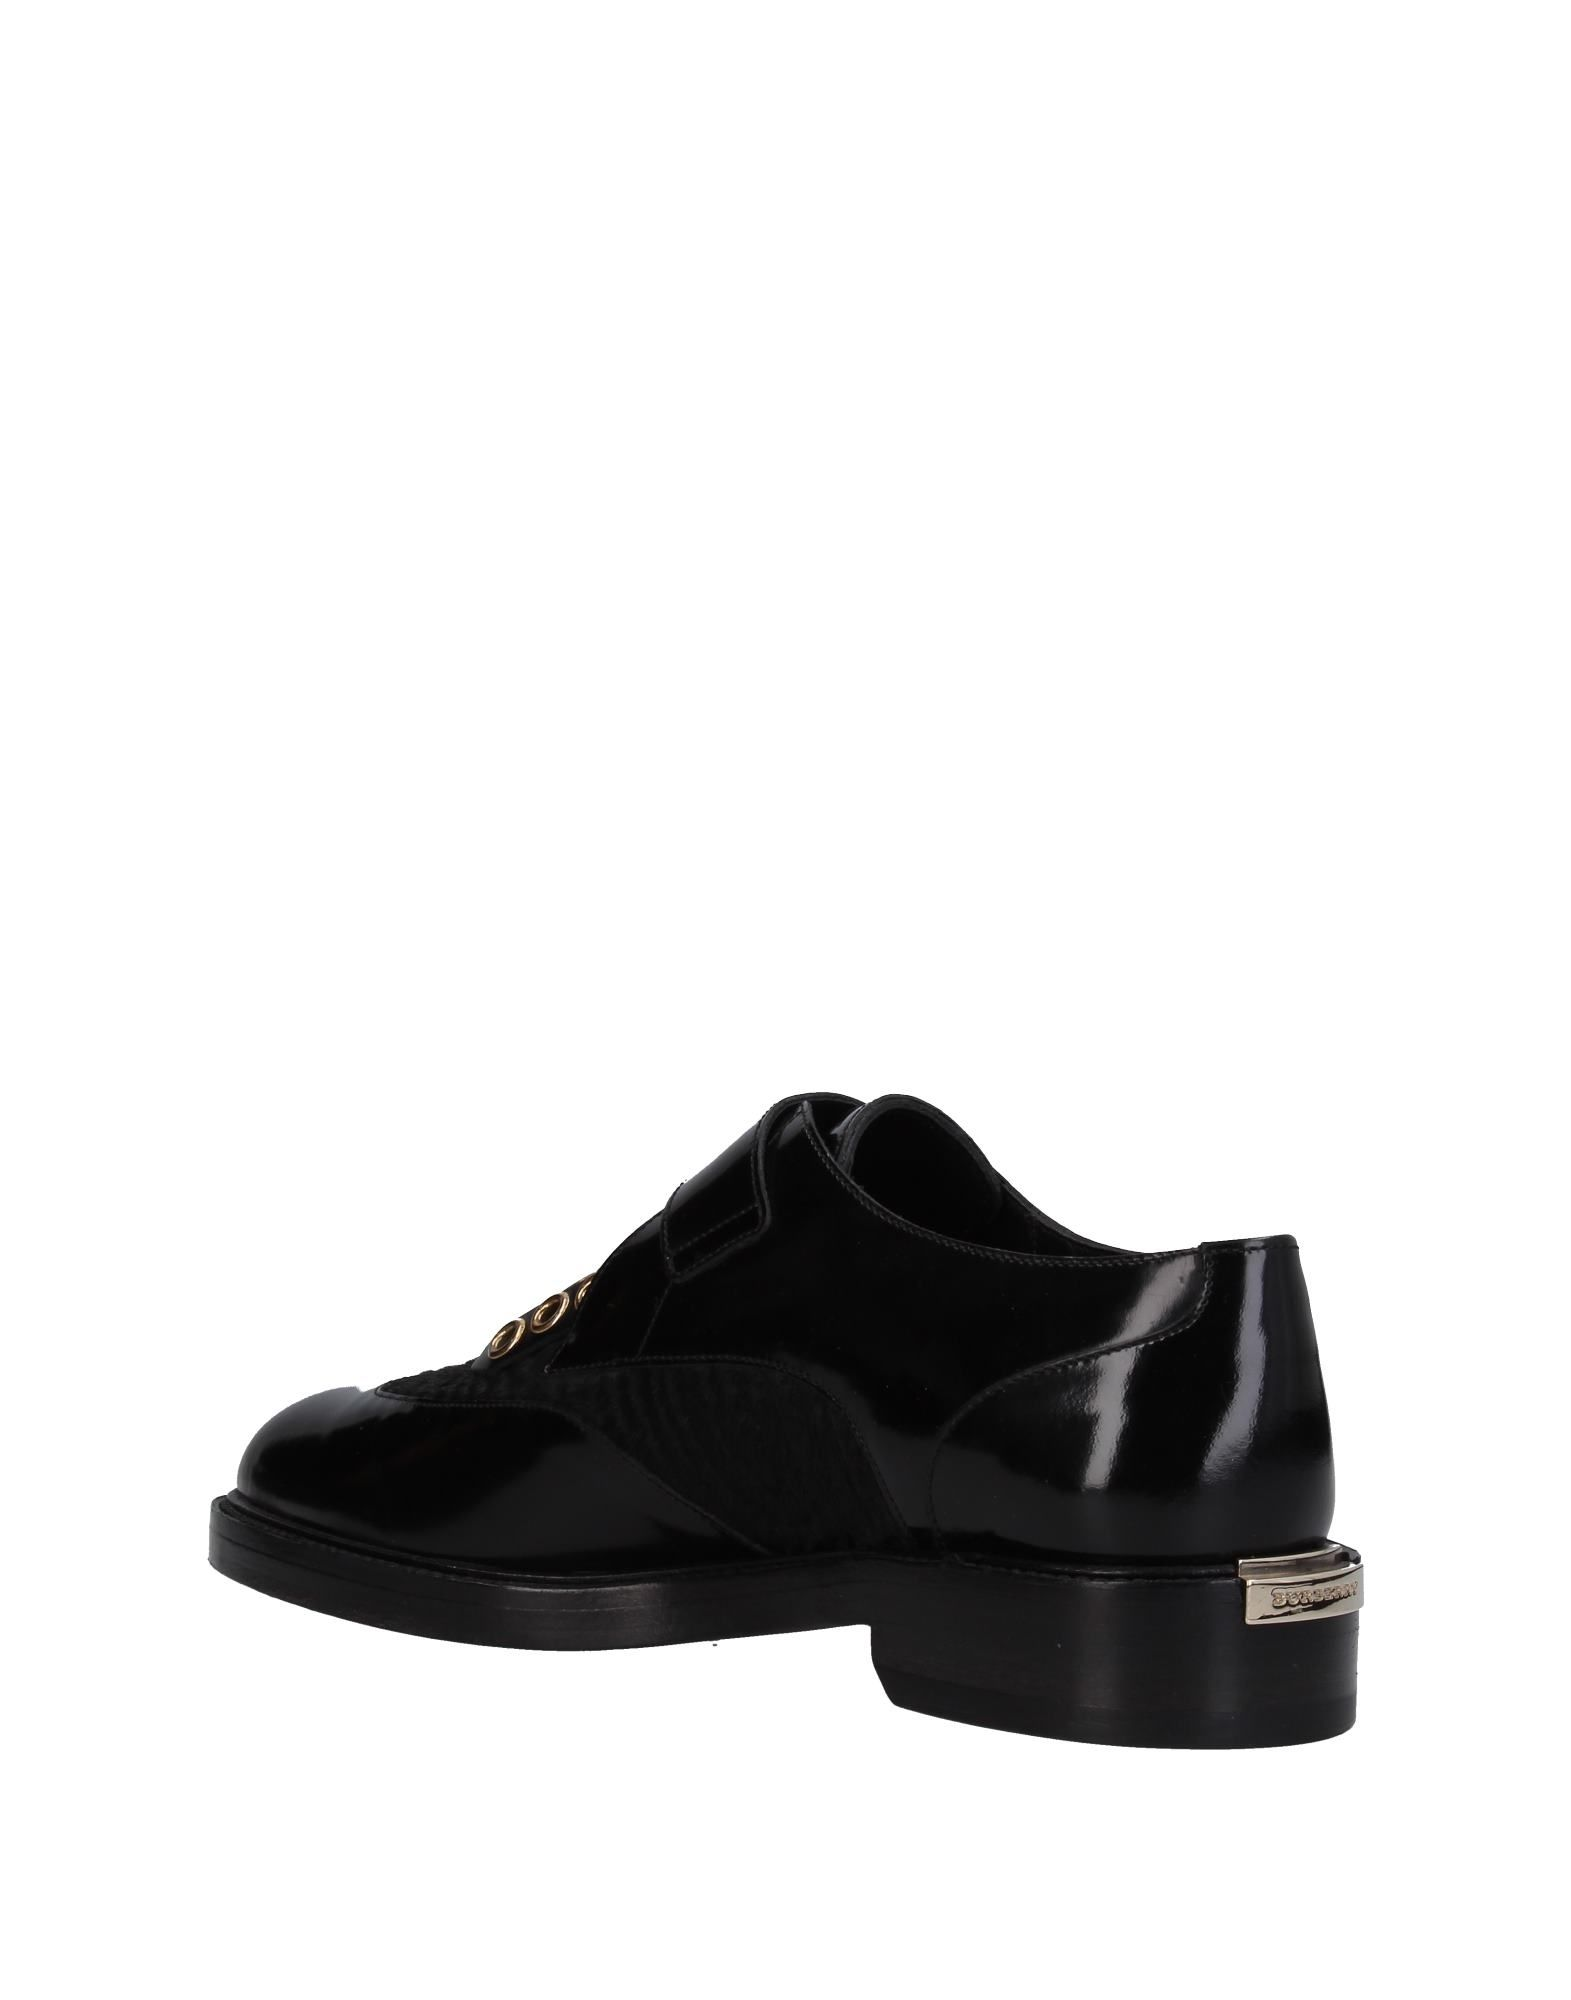 Mocassins Burberry Femme - Mocassins Burberry sur